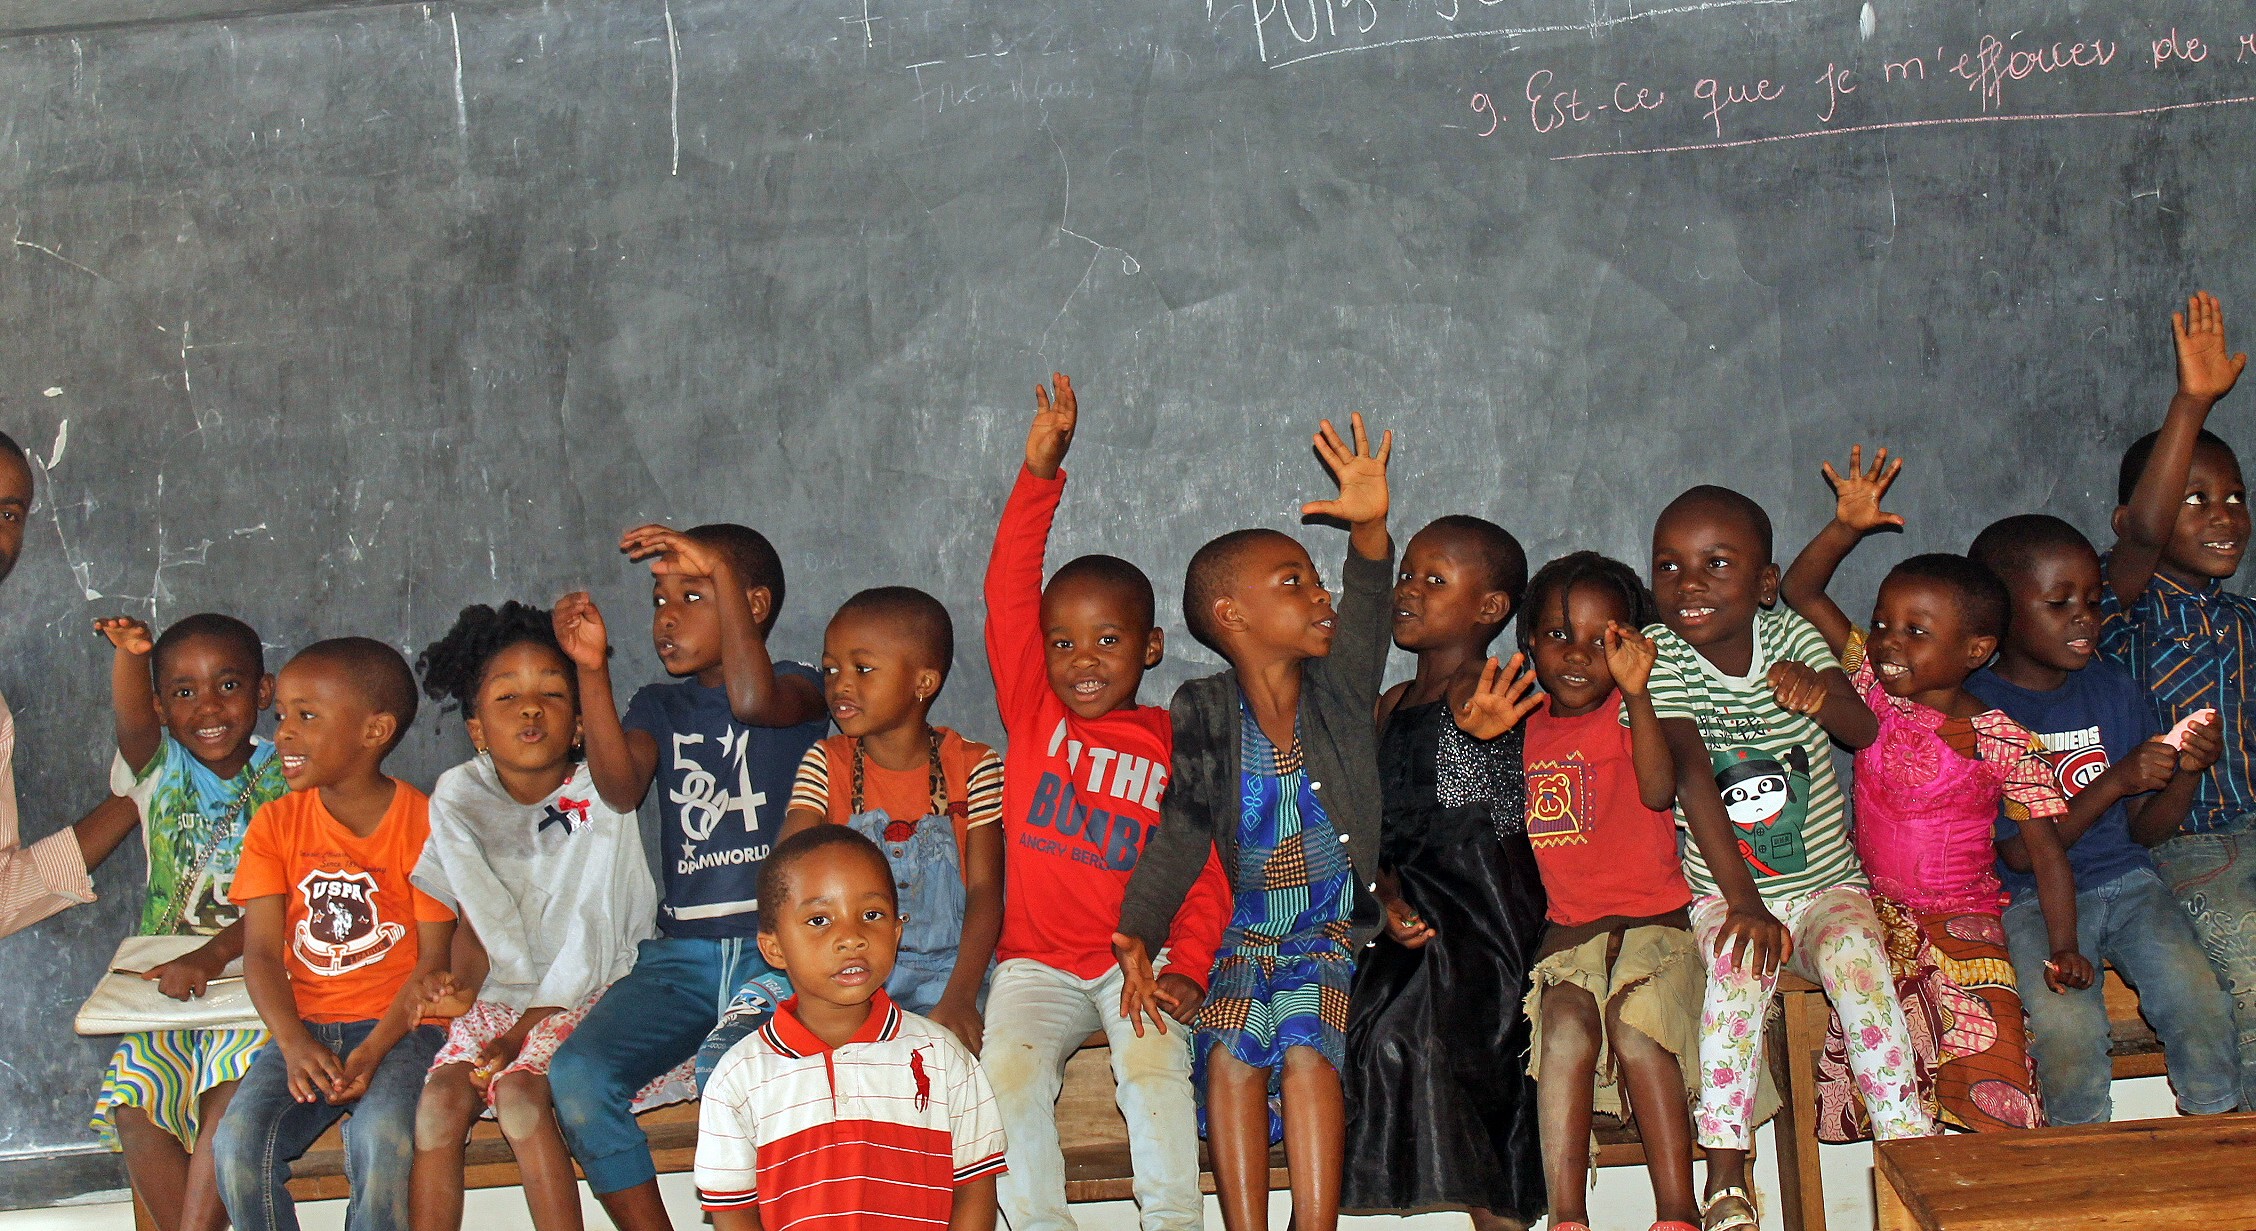 Hands up for education   Future Hope Africa supports children's education through tutoring, a resource library, scholarships and field trips.